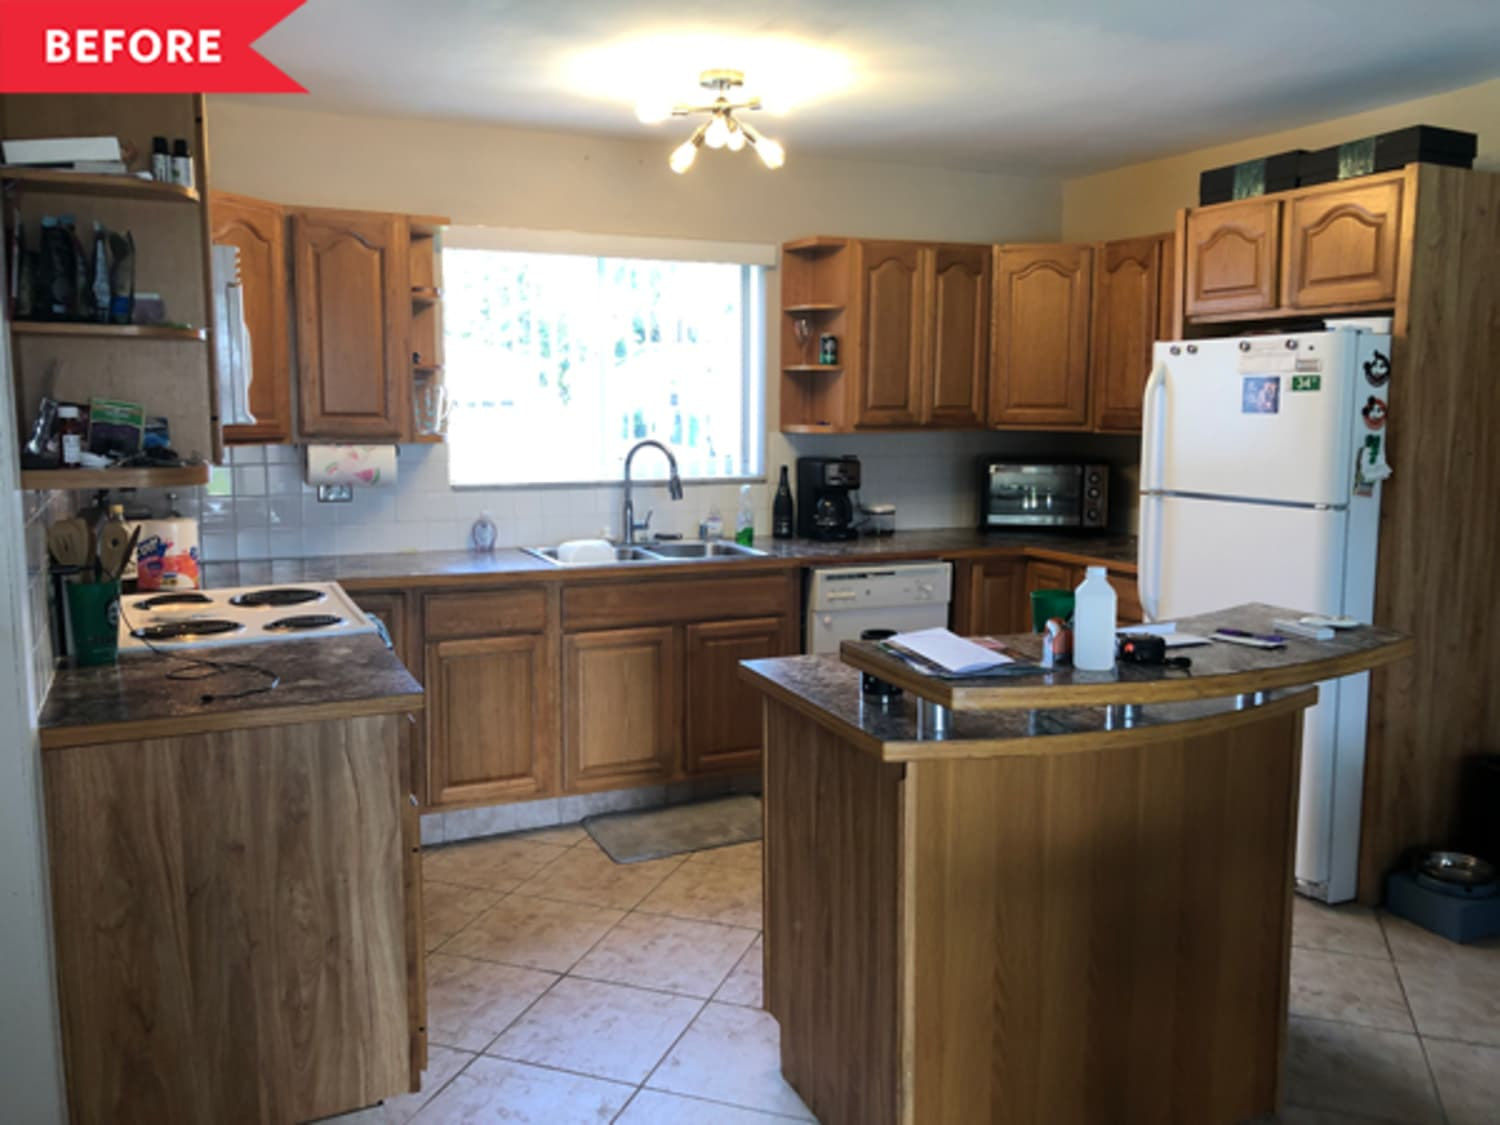 Before & After: This Dark Kitchen Got a Bright White DIY Redo